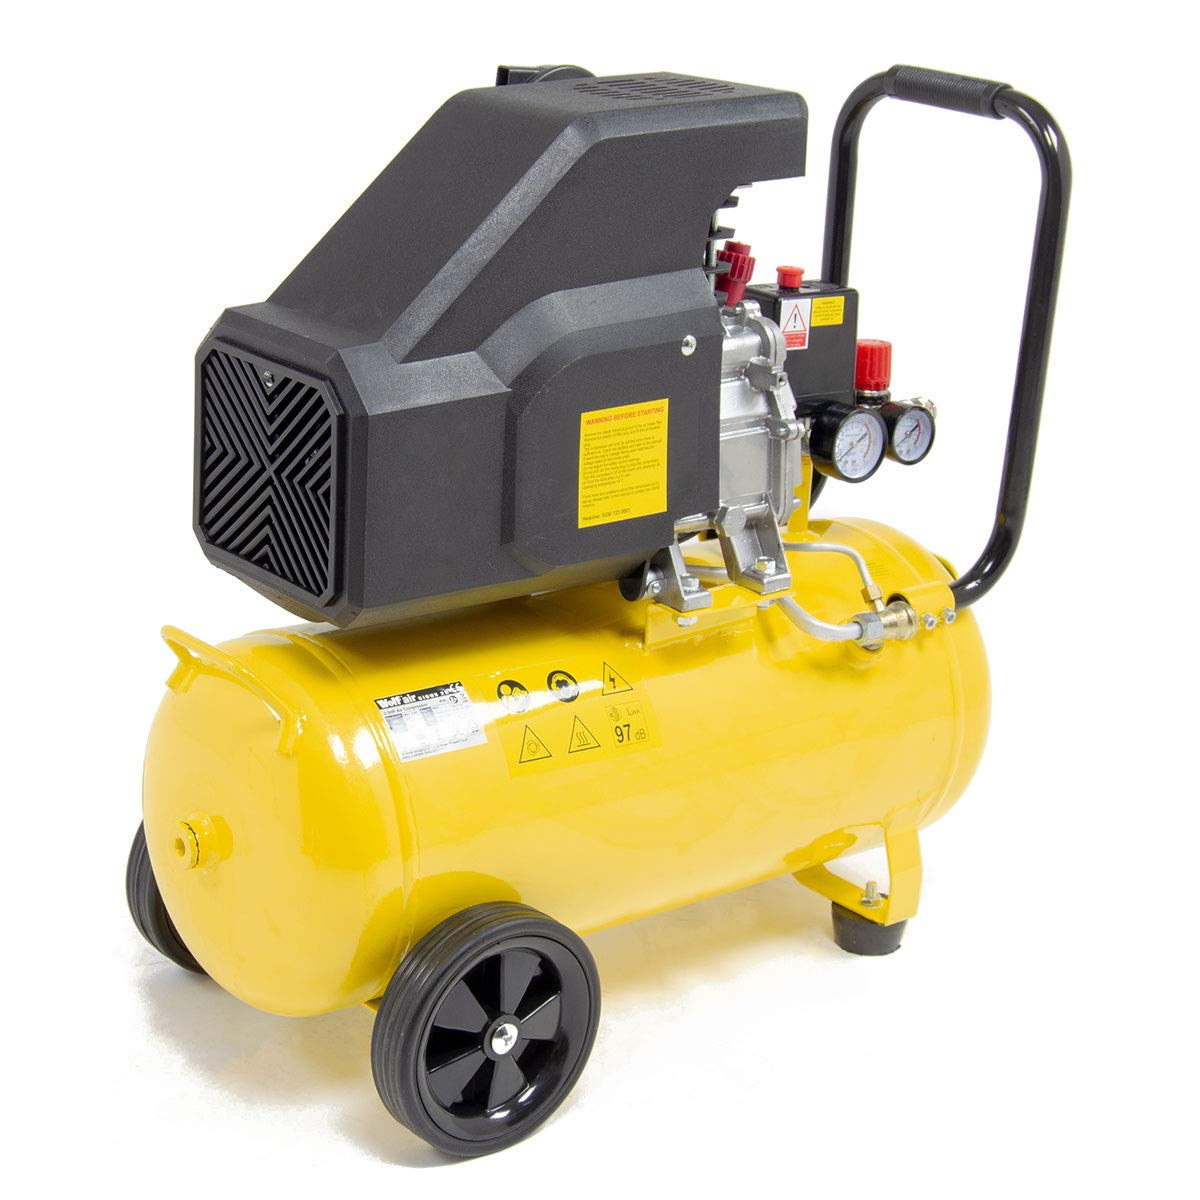 Wolf Sioux 24L Air Compressor 2.5HP Motor 9.6 CFM 116 PSI 230V with 5 Piece Air Tool Kit /& Air Brush Kit